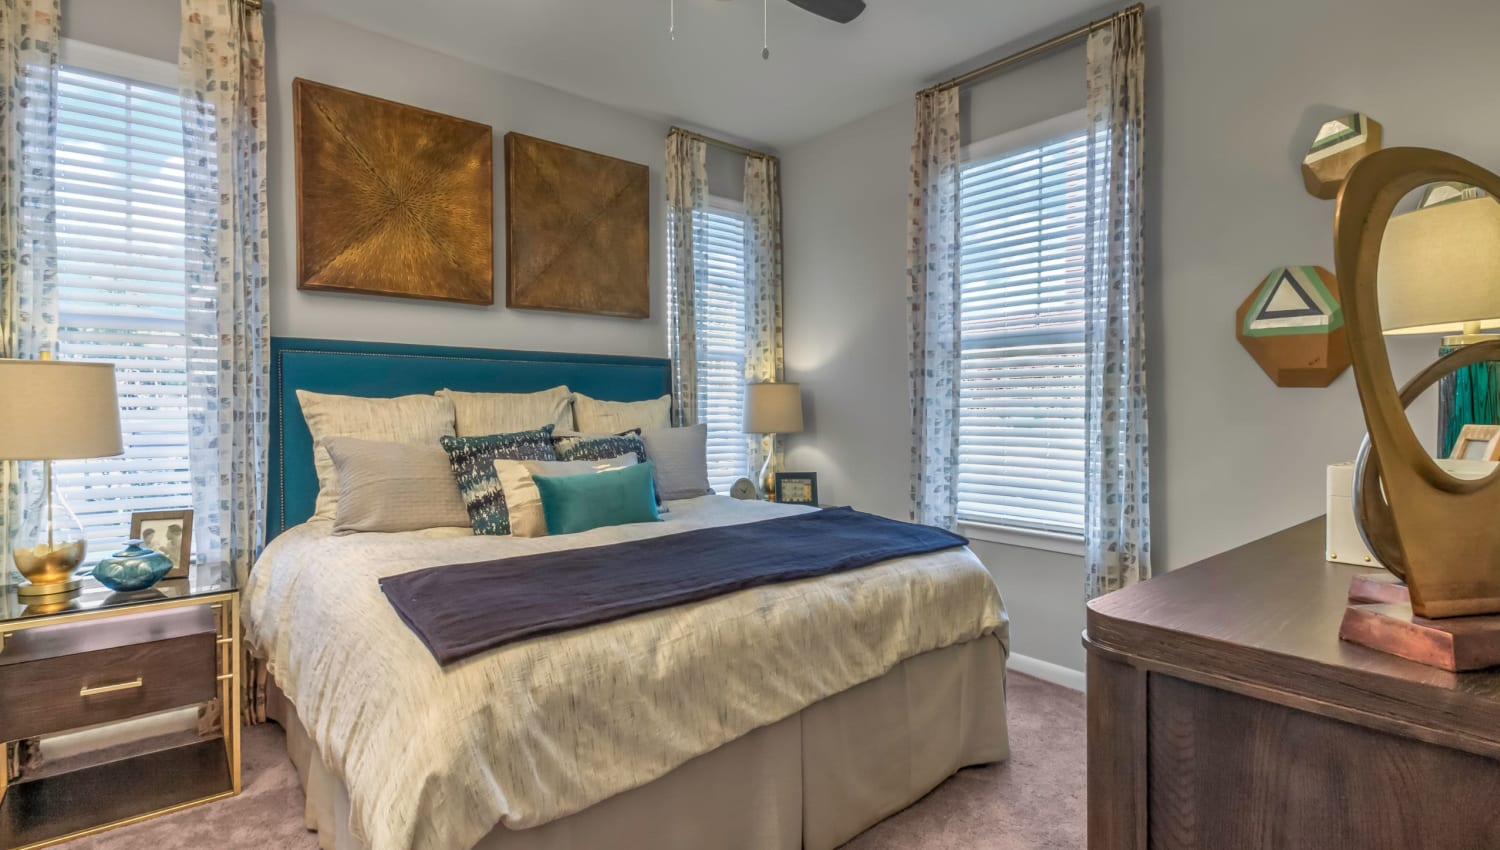 Spacious bedroom with lots of windows at The Palmer in Charlotte, North Carolina